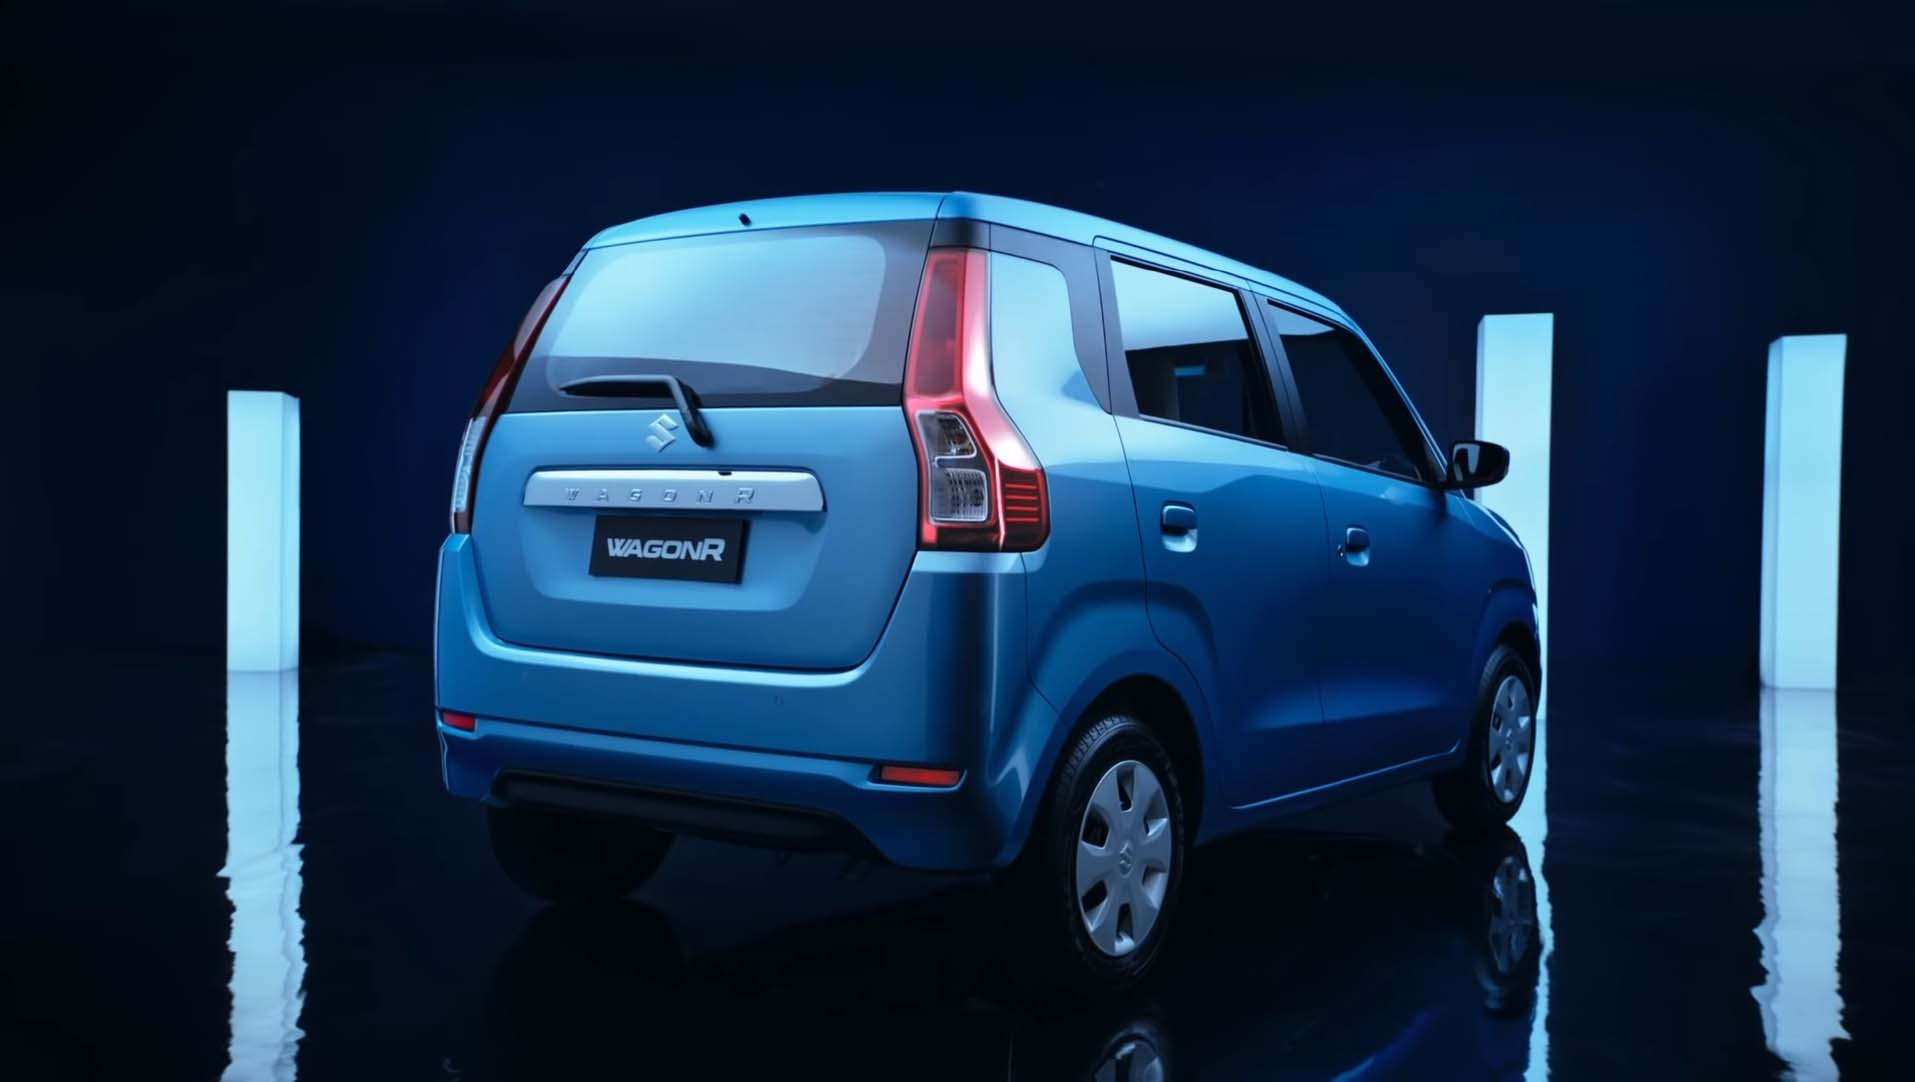 https://iciciauto.com/storage/upload/model_images/Maruti Wagon R - Back View.jpg